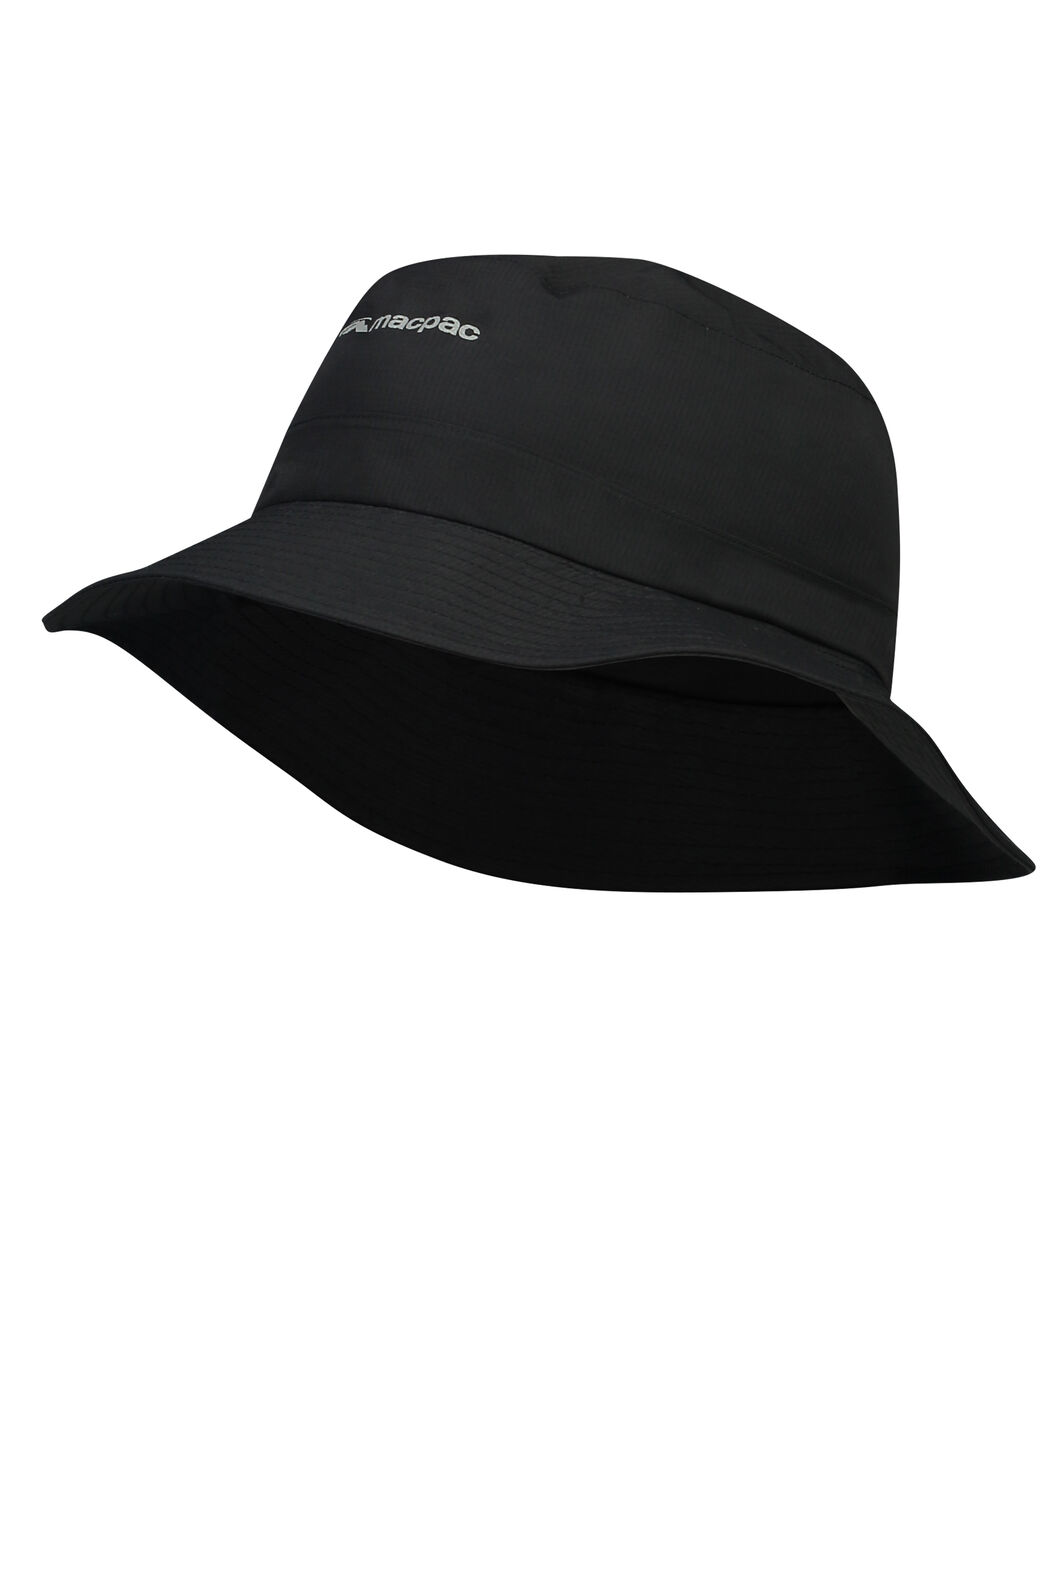 Waterproof Hat, Black, hi-res